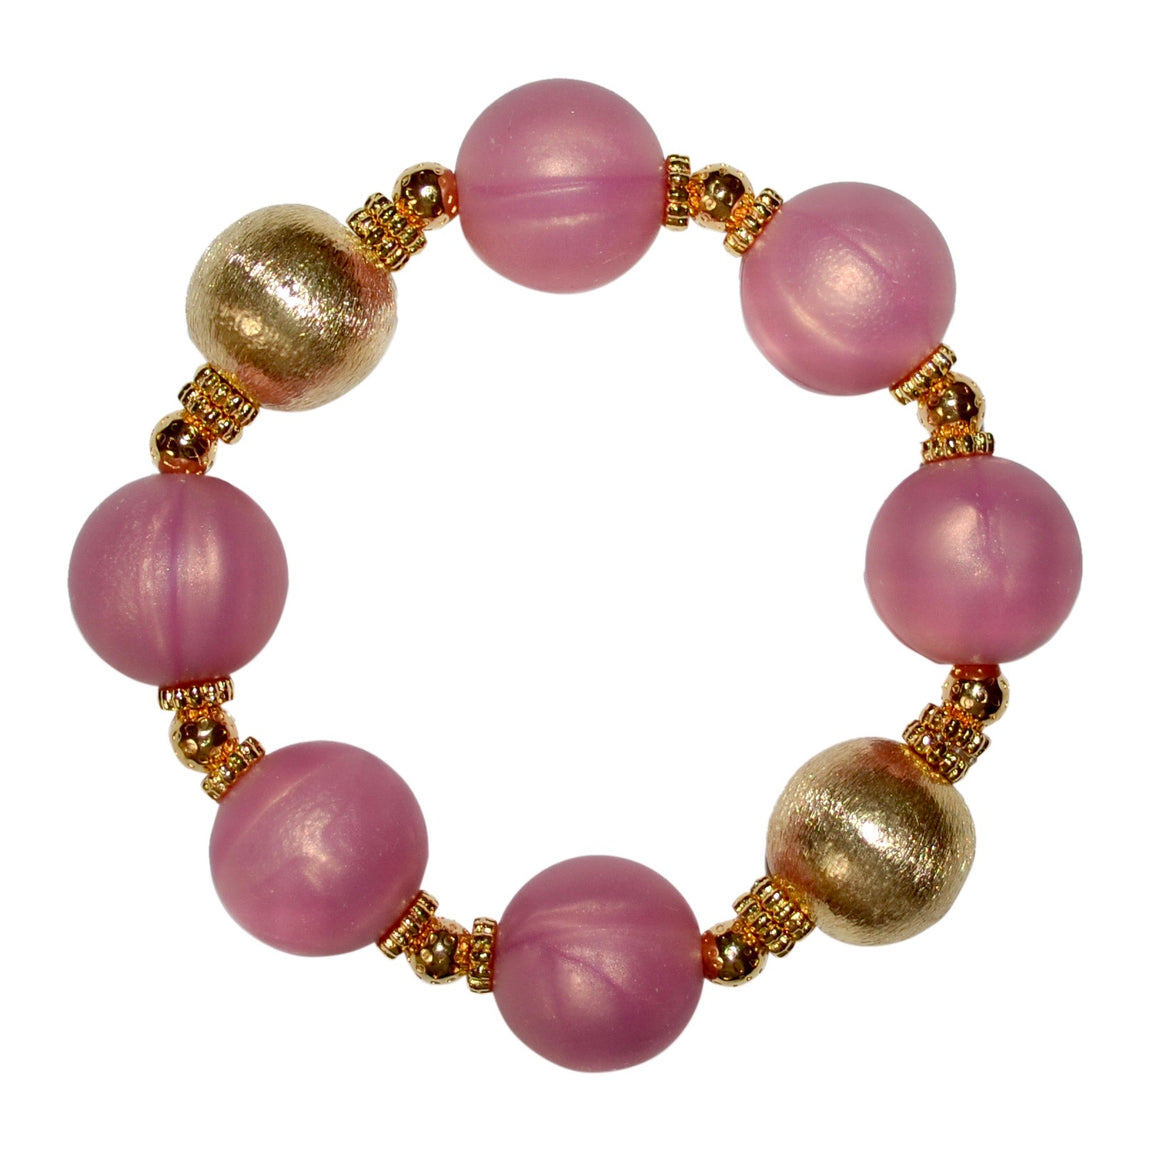 TESSA STATEMENT BRACELET IN ROSE PINK AND GOLD